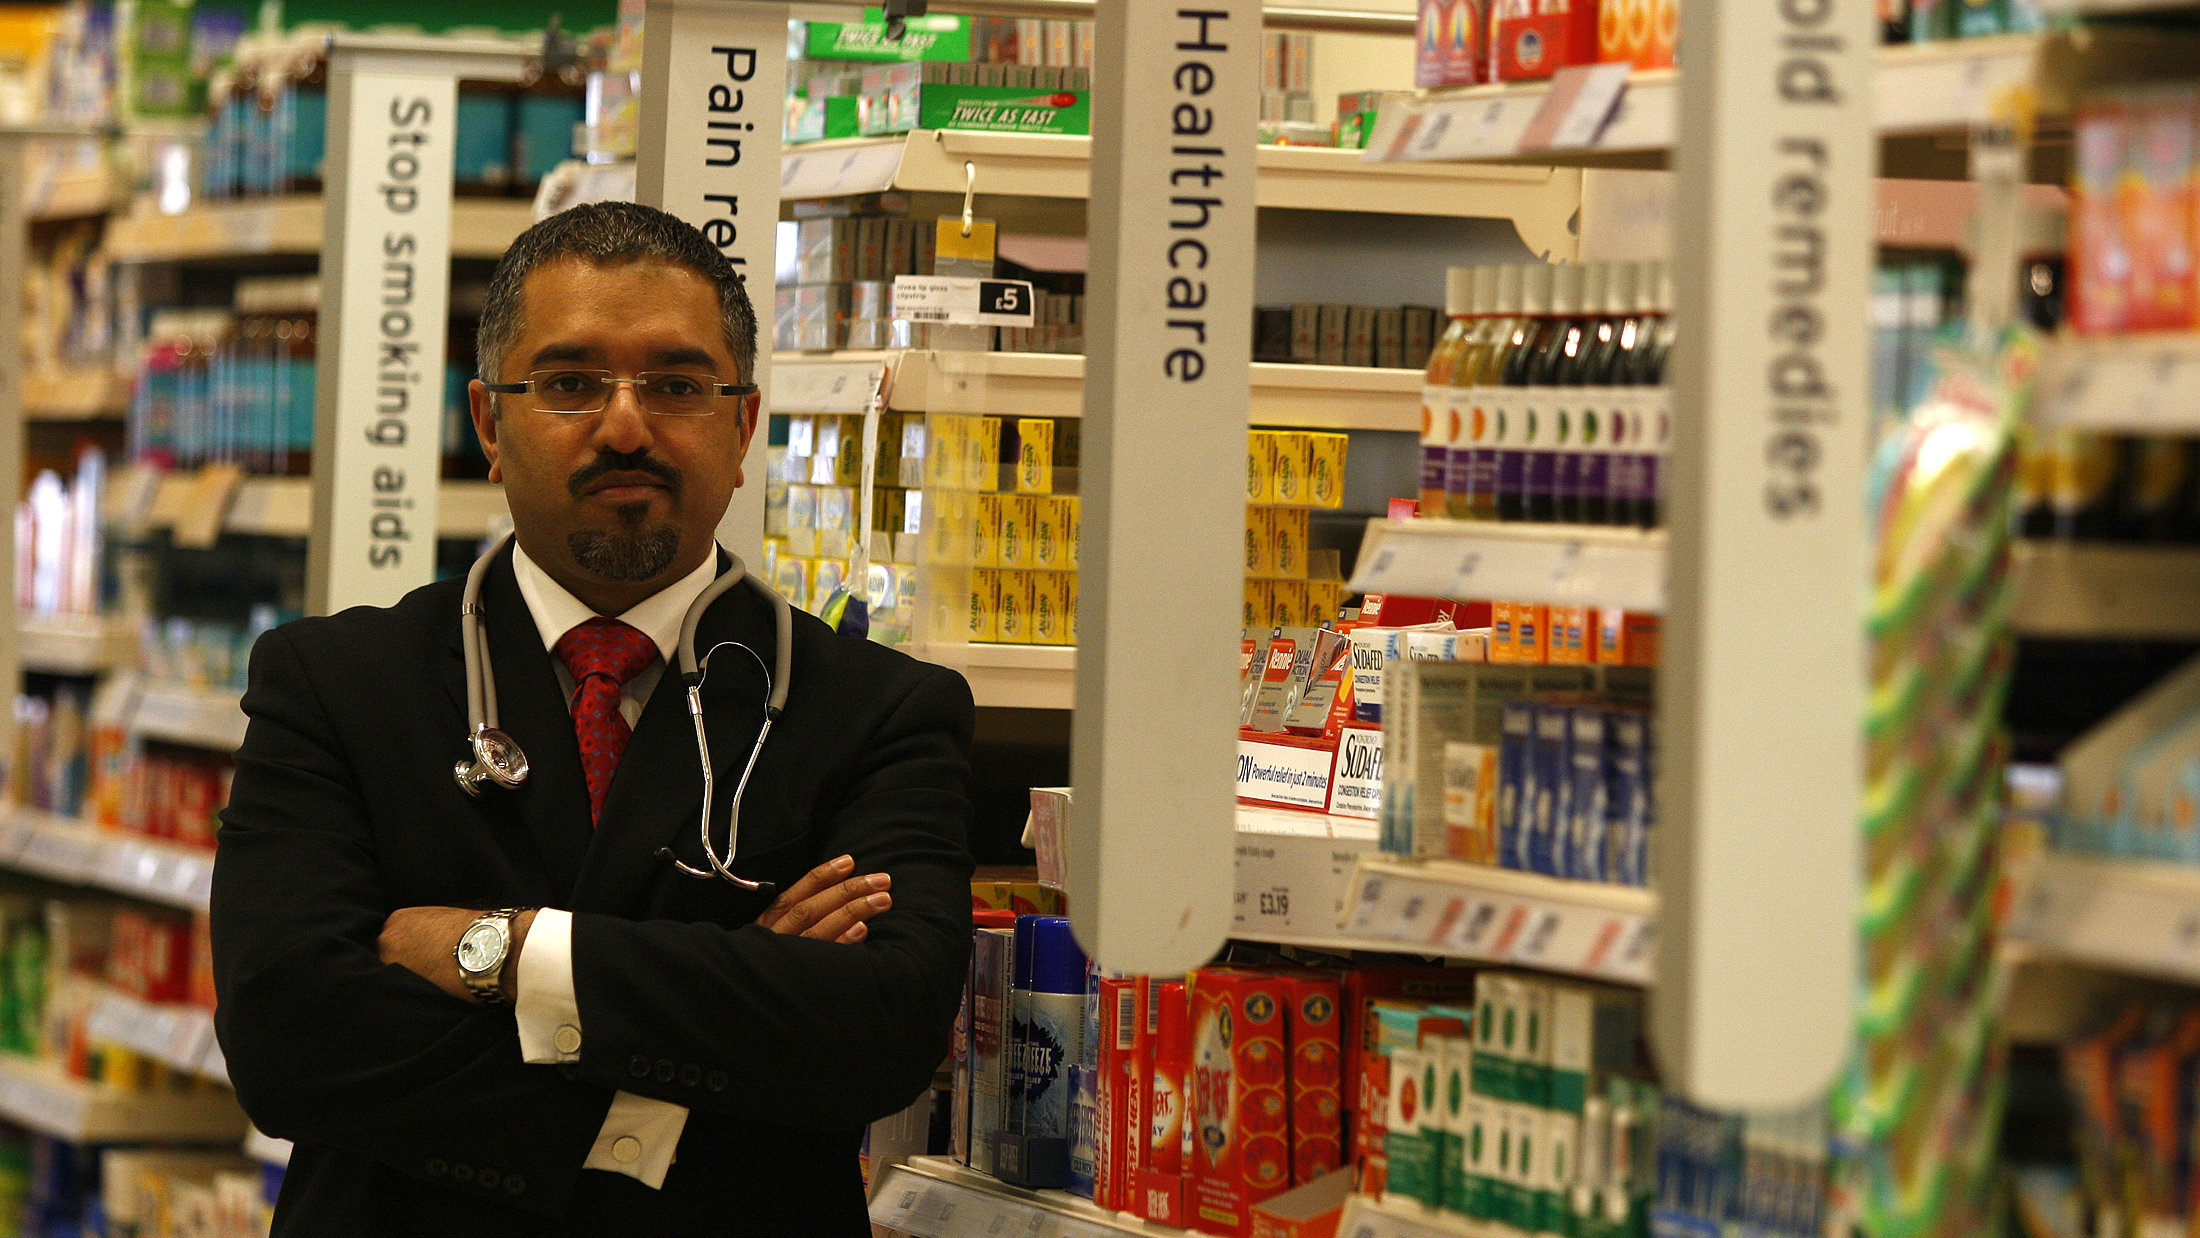 Doctor Mohammed Jiva poses for photographers in the medicine aisle inside the Sainsbury's store in Heaton Park, Manchester, northern England, March 3, 2008. The supermarket began an out-of-hours GP appointment scheme, and local media reported that the supermarket was the first in the country to offer GP appointments. REUTERS/Phil Noble (BRITAIN)